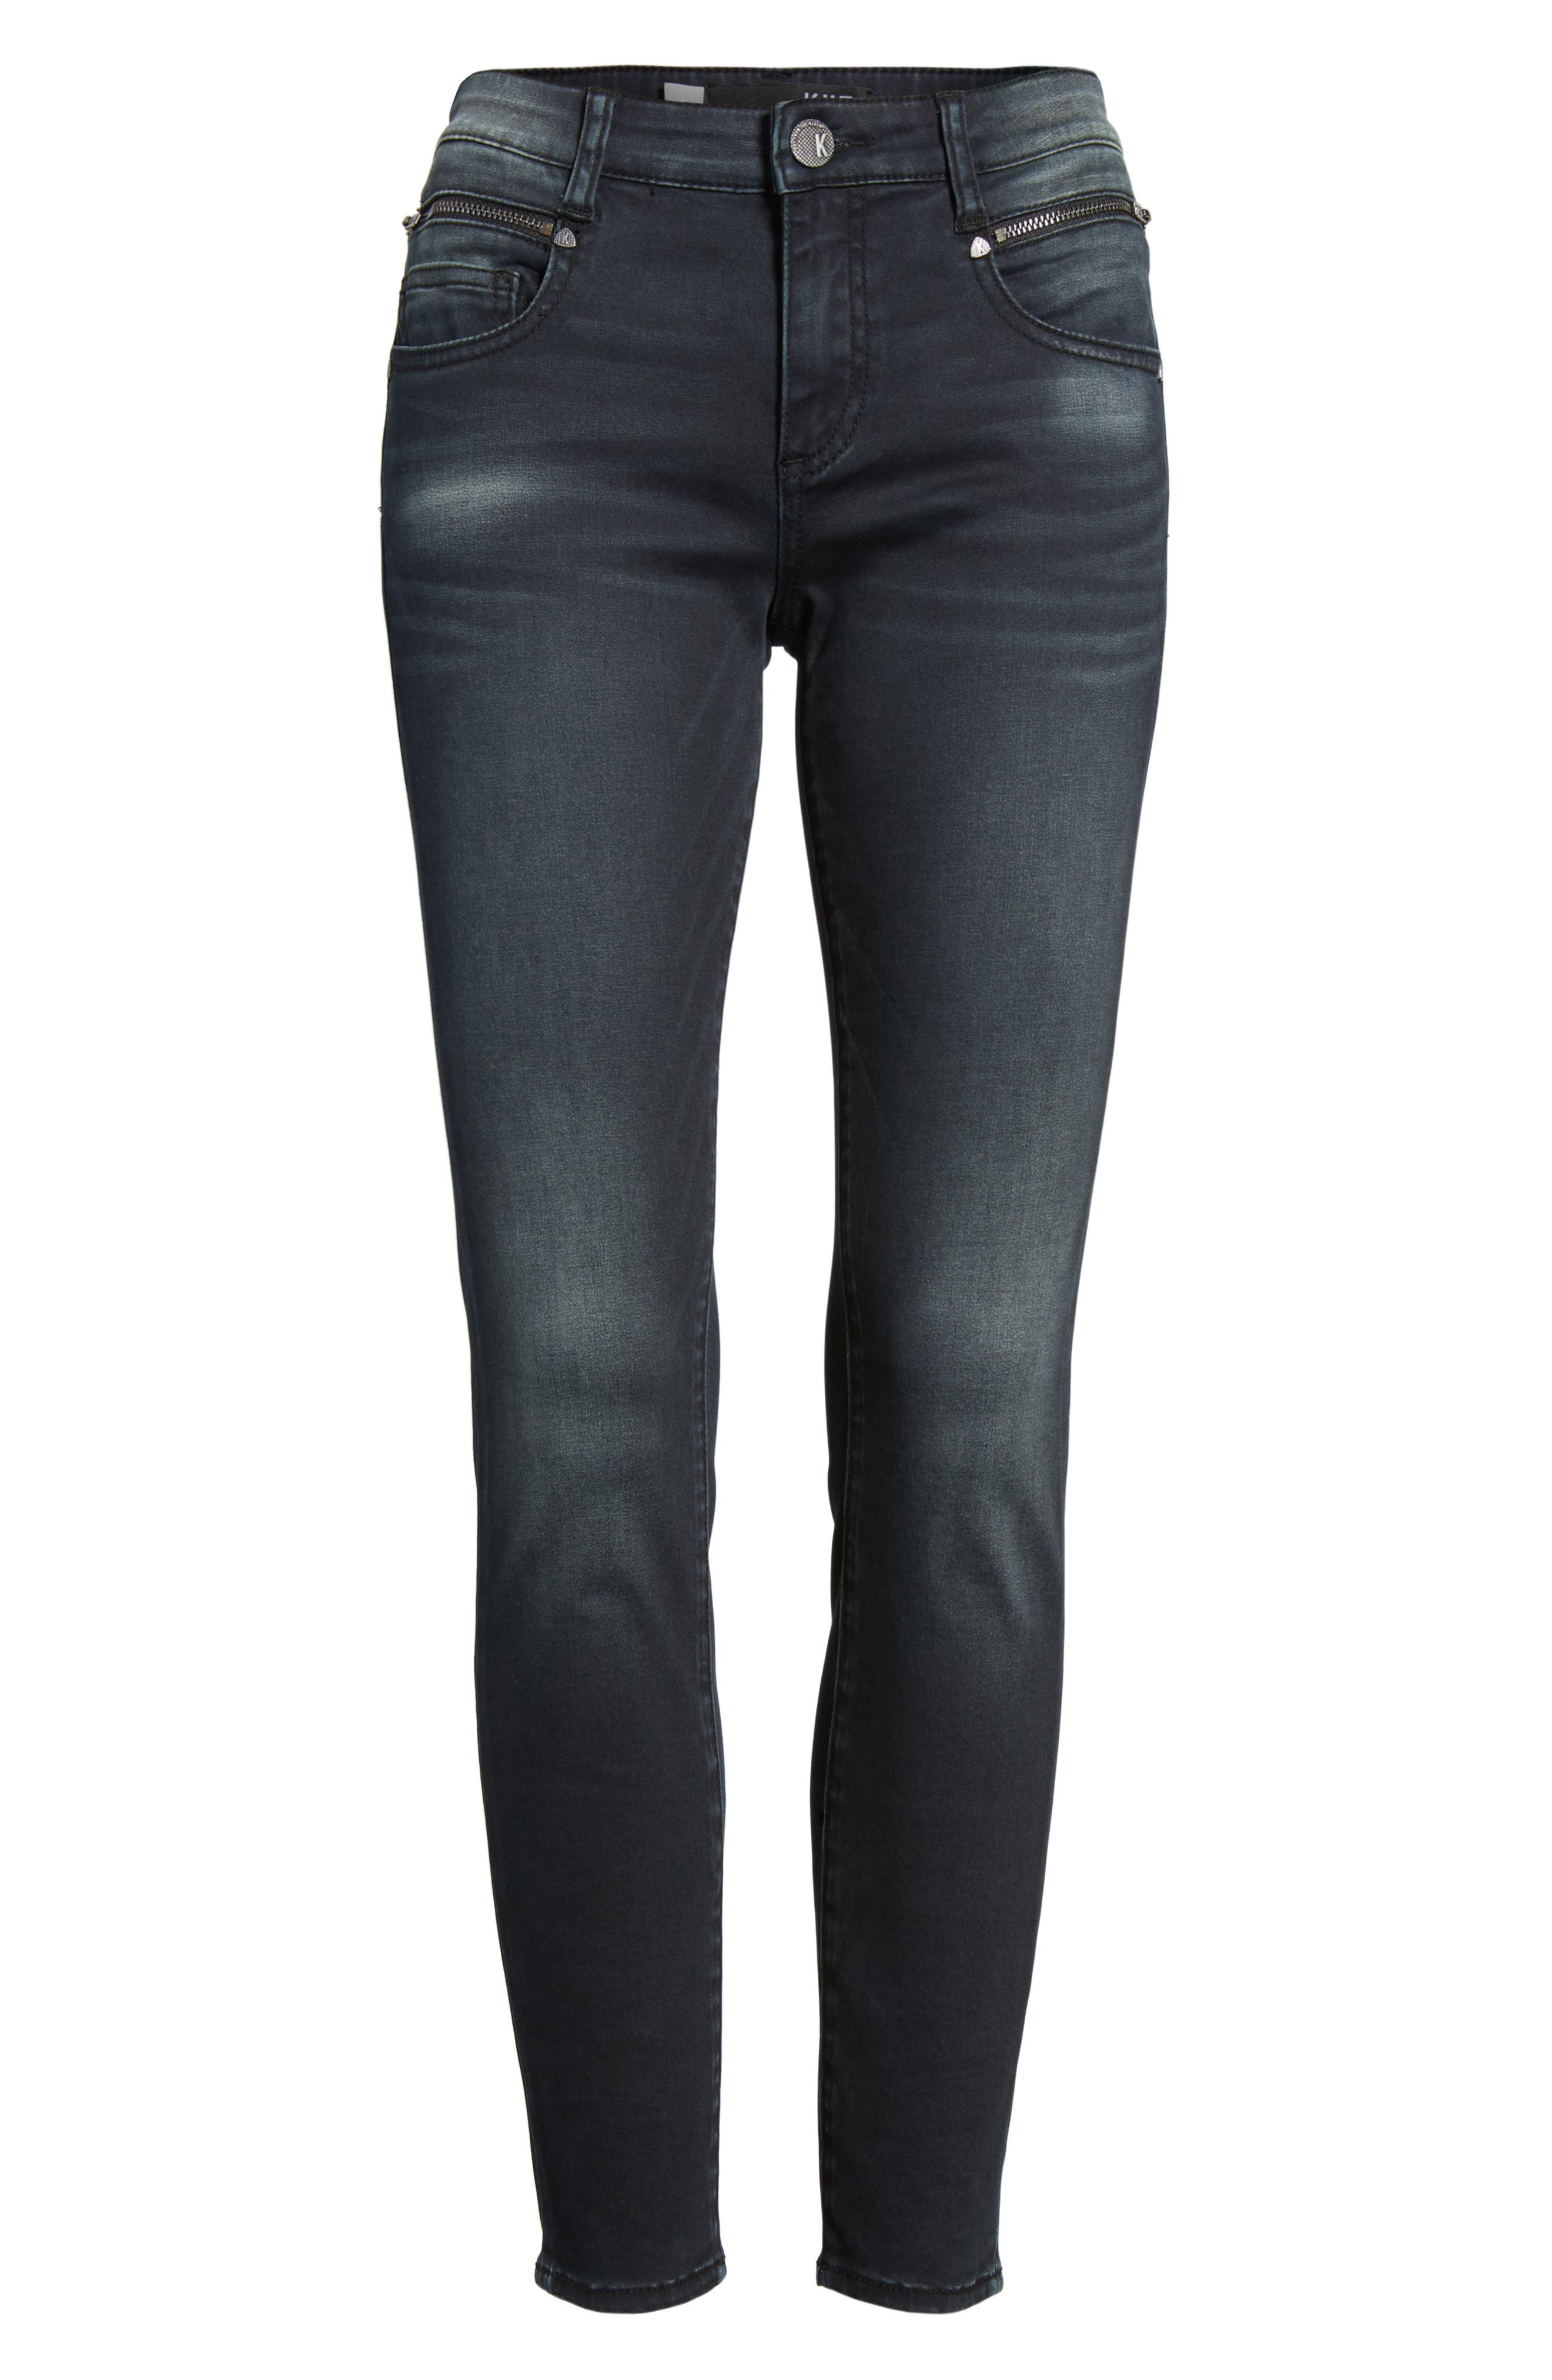 Reese Skinny Ankle Jeans,                             Alternate thumbnail 6, color,                             431